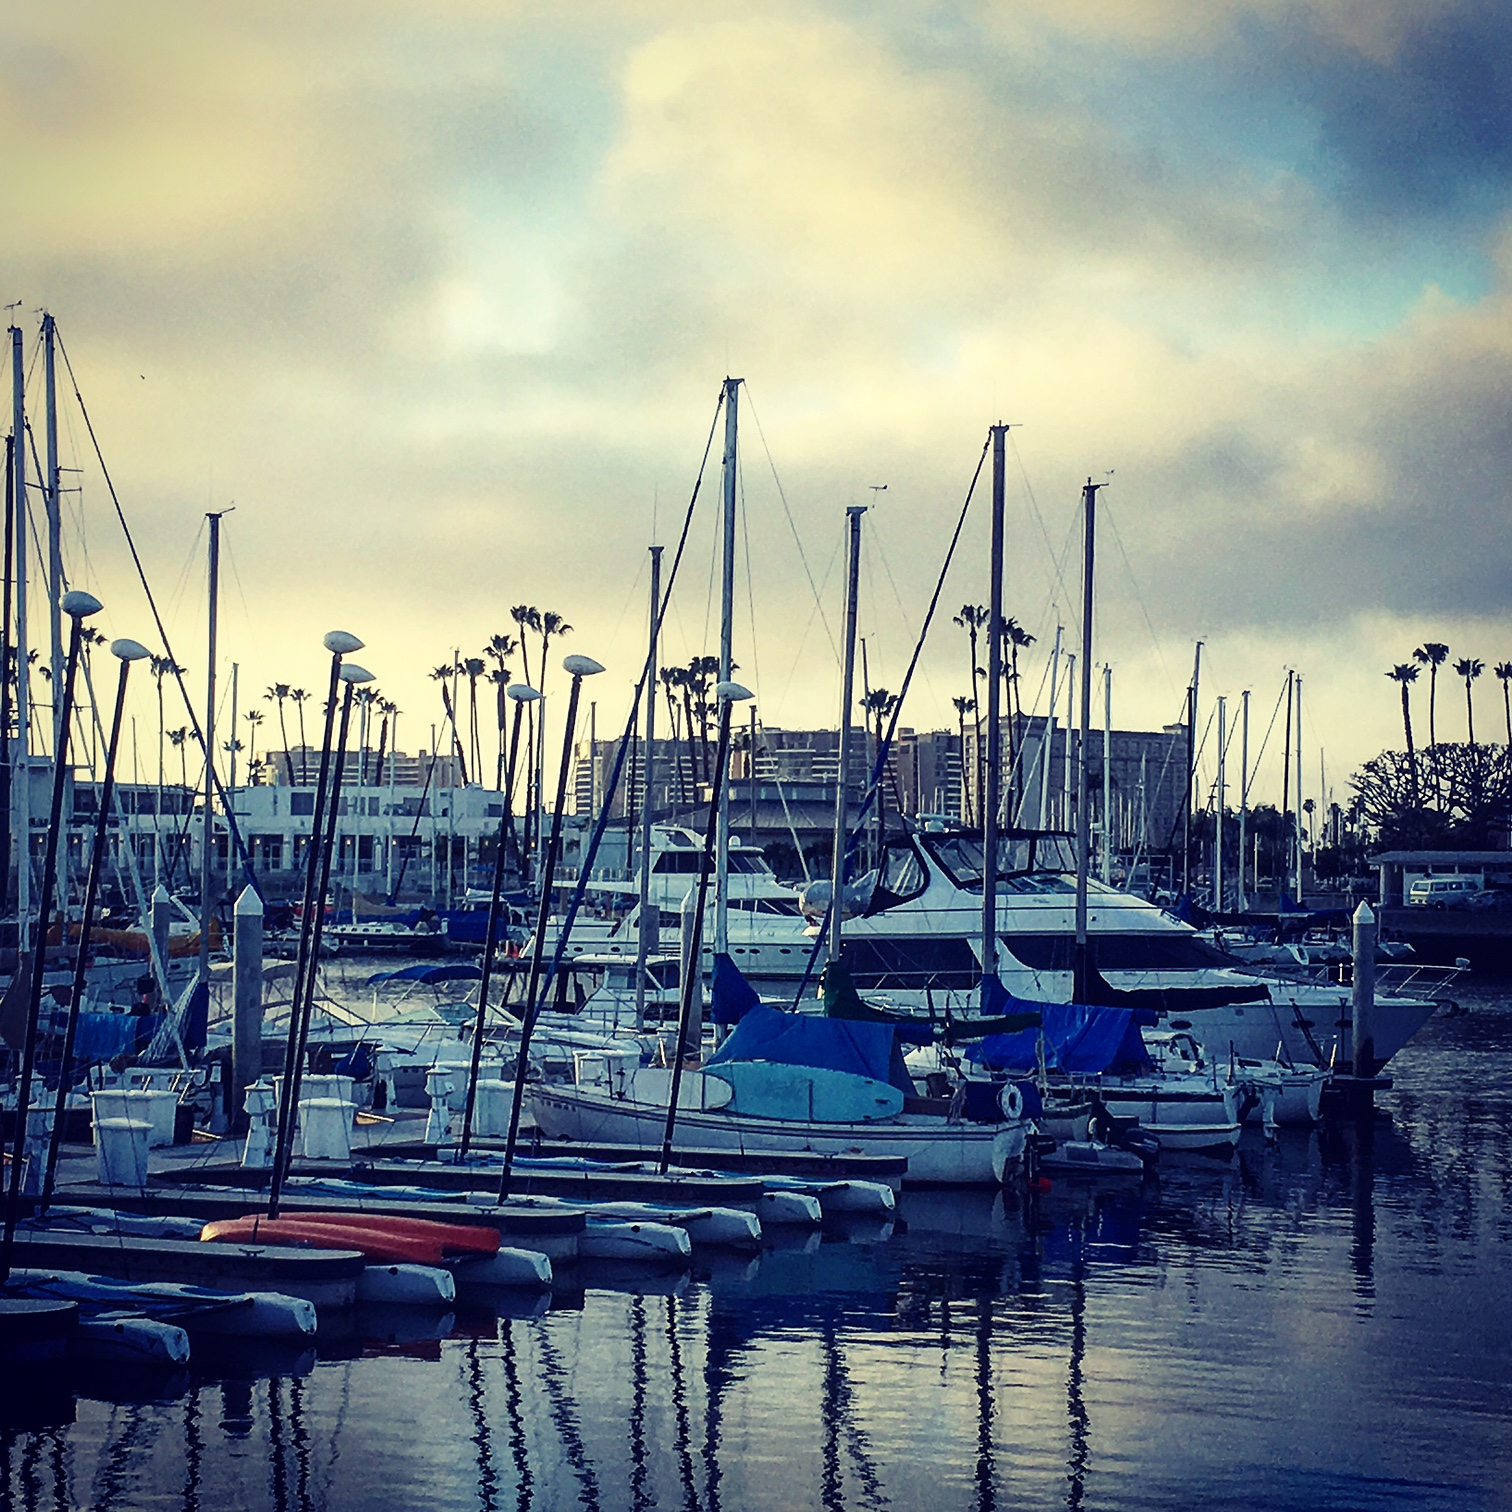 Marina Del Rey Boating Activities